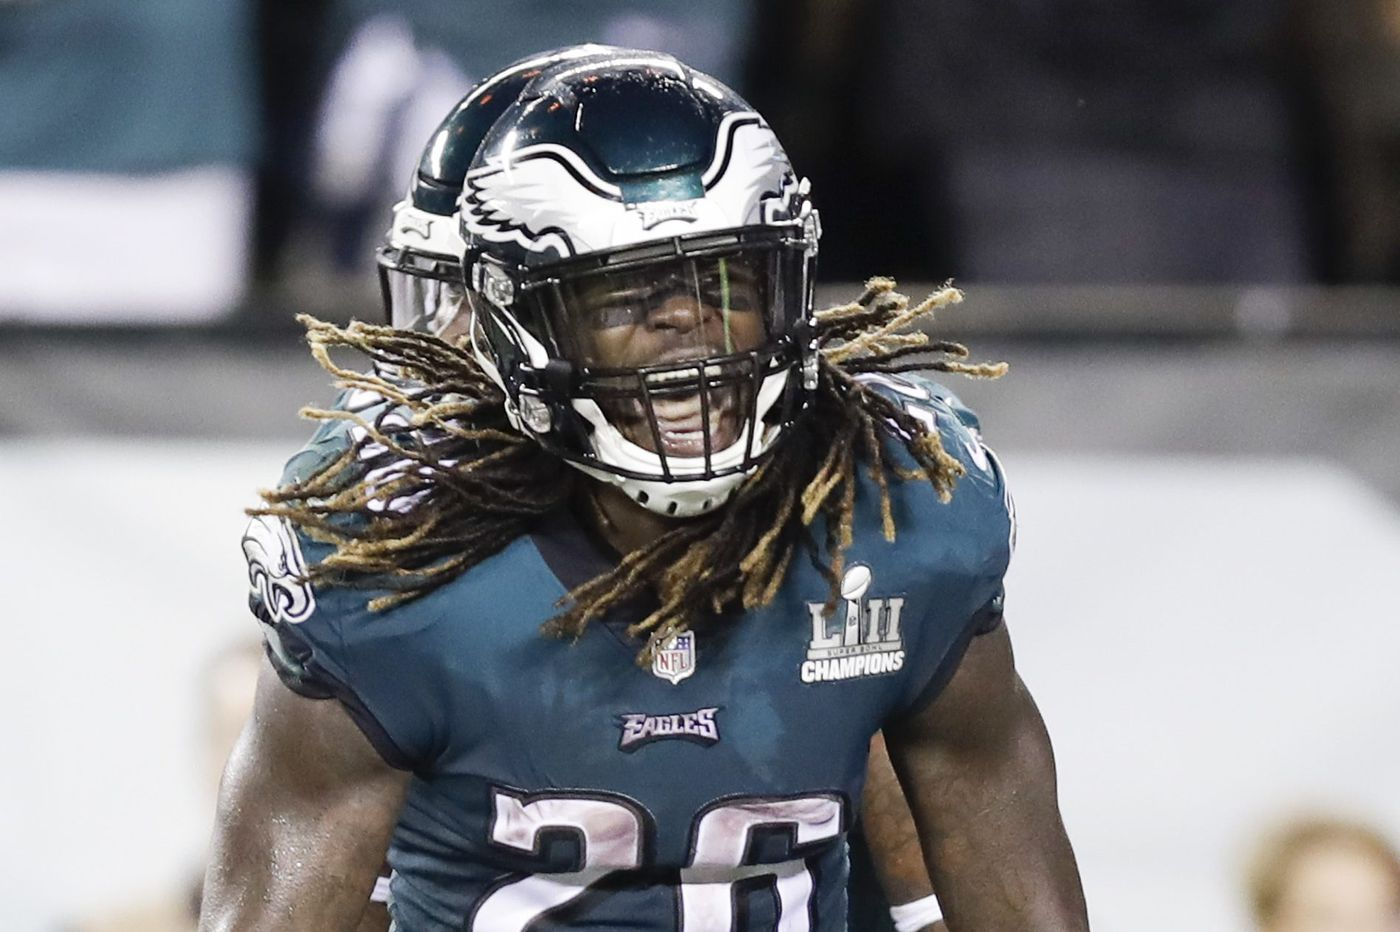 Jay Ajayi is loving his drama-free life with the Eagles and without the Dolphins | Mike Sielski